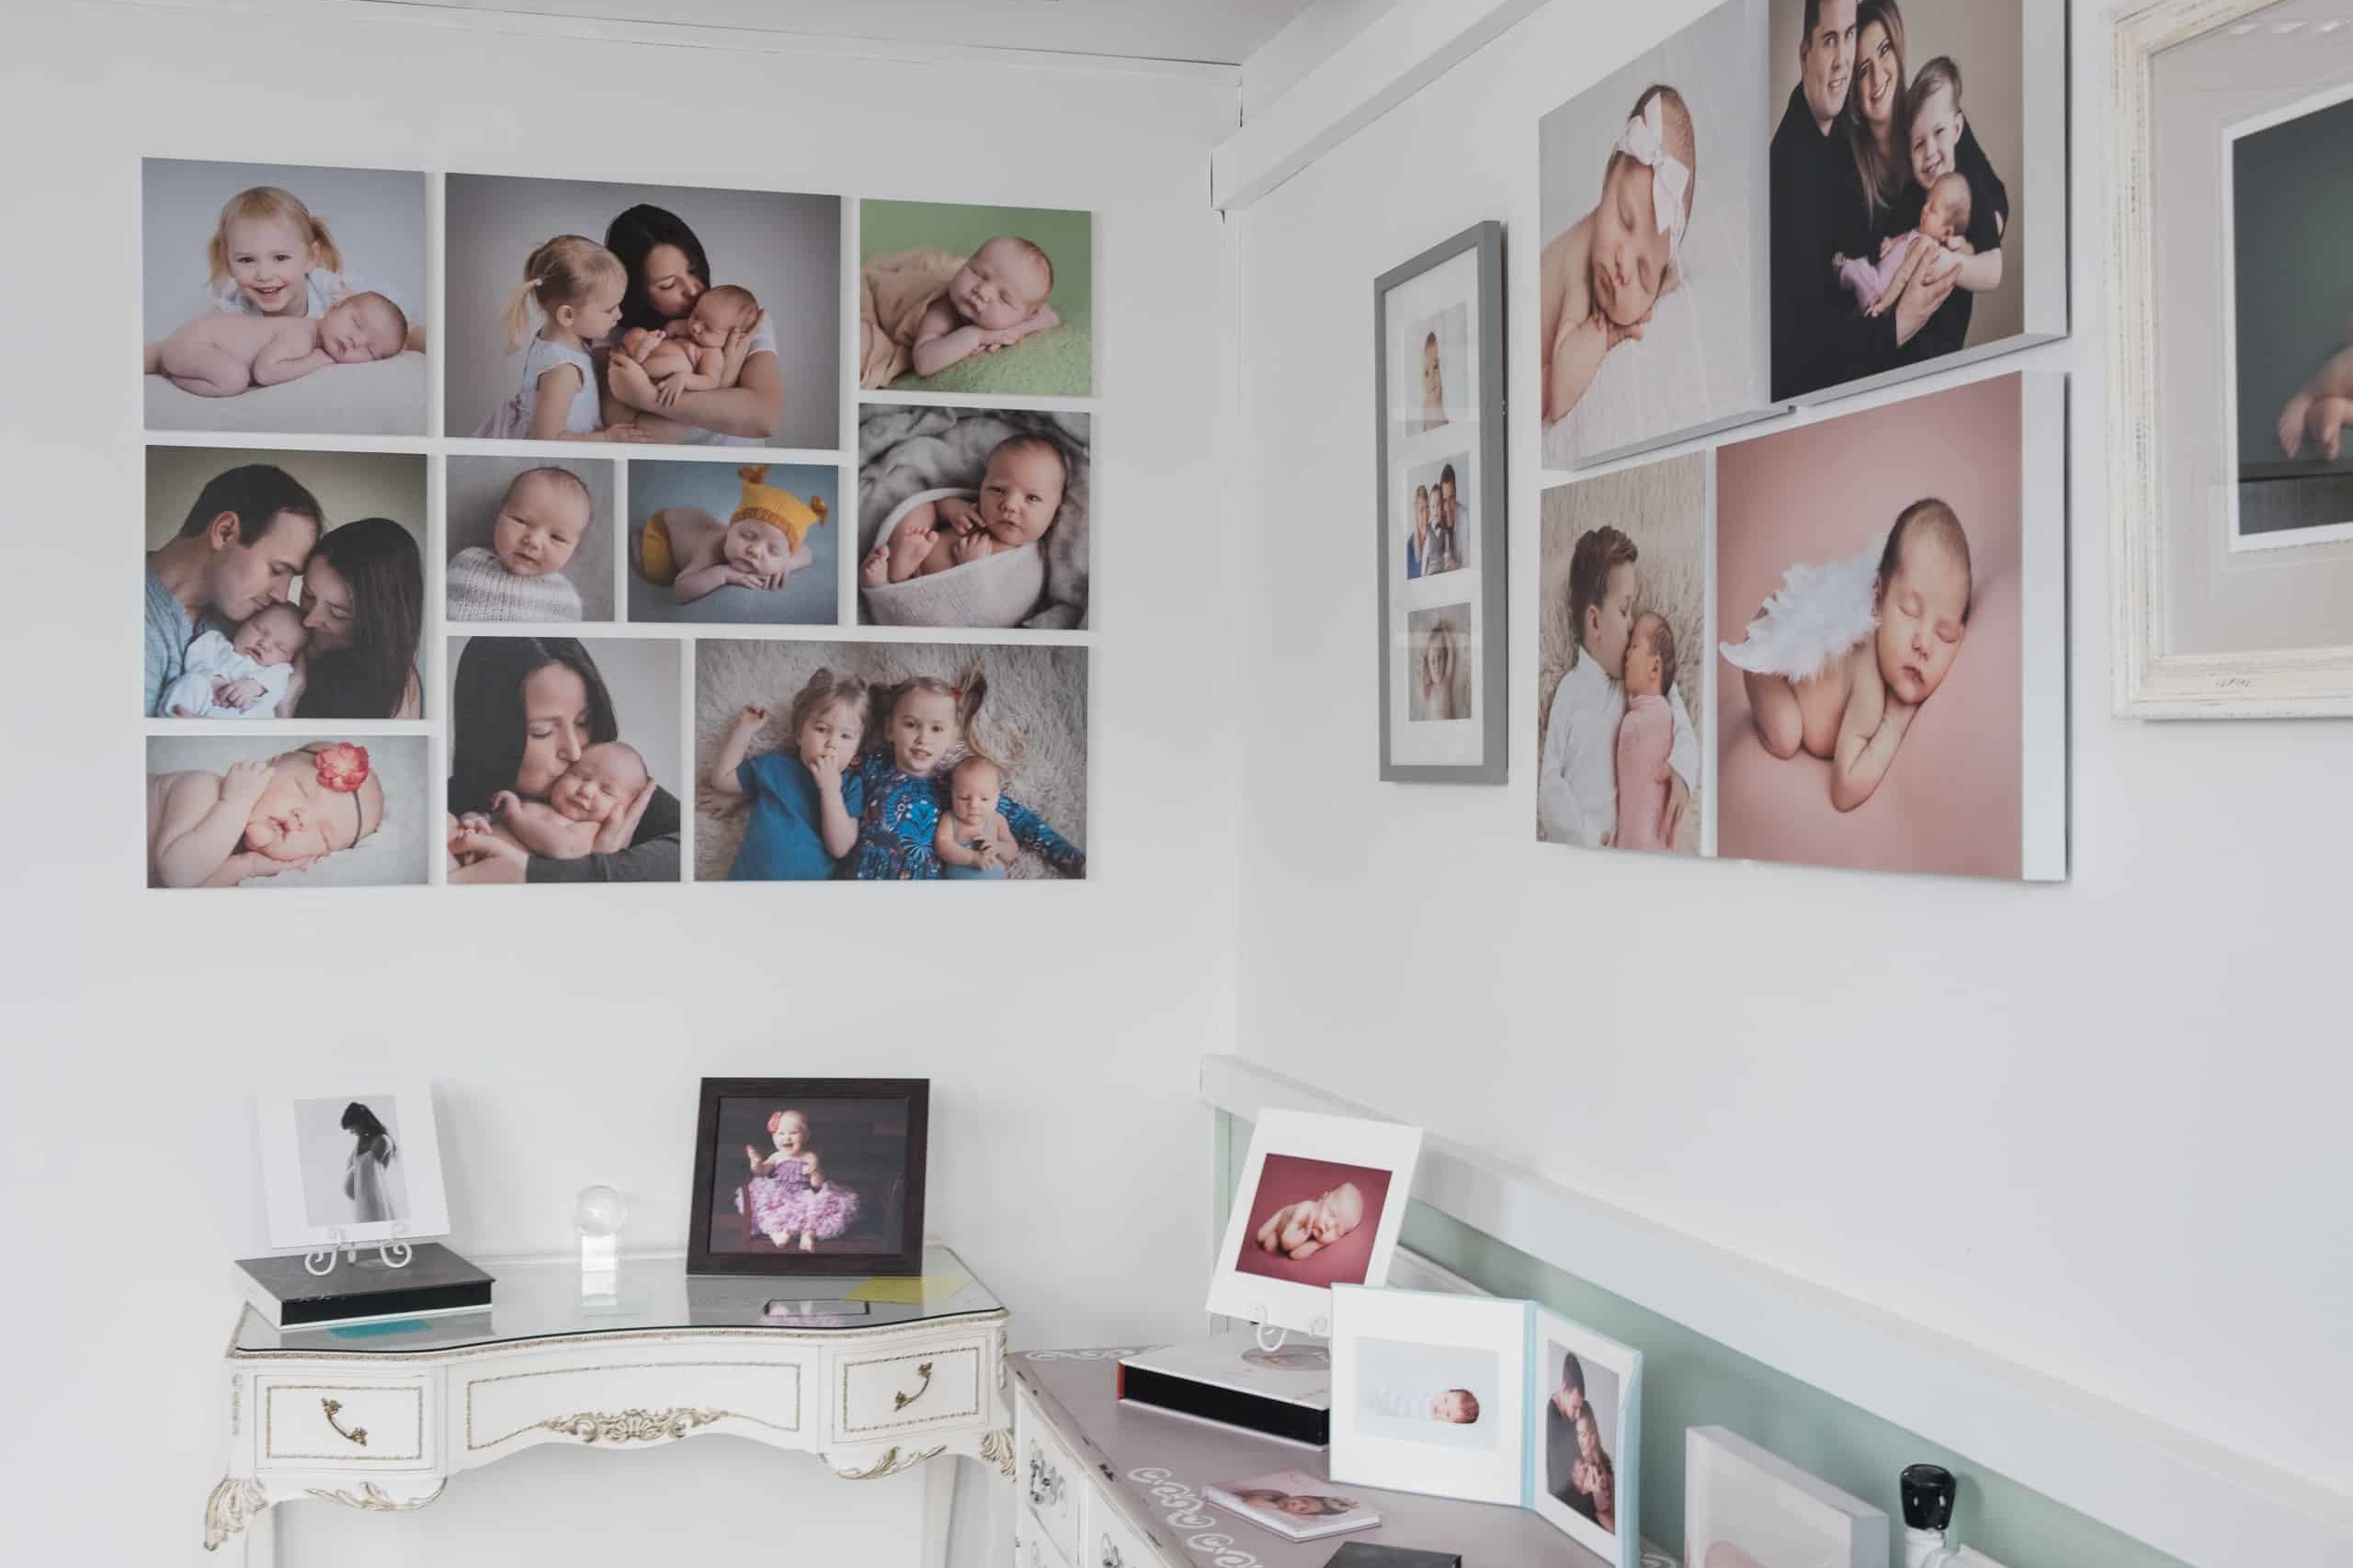 Wall display products on photography studio walls